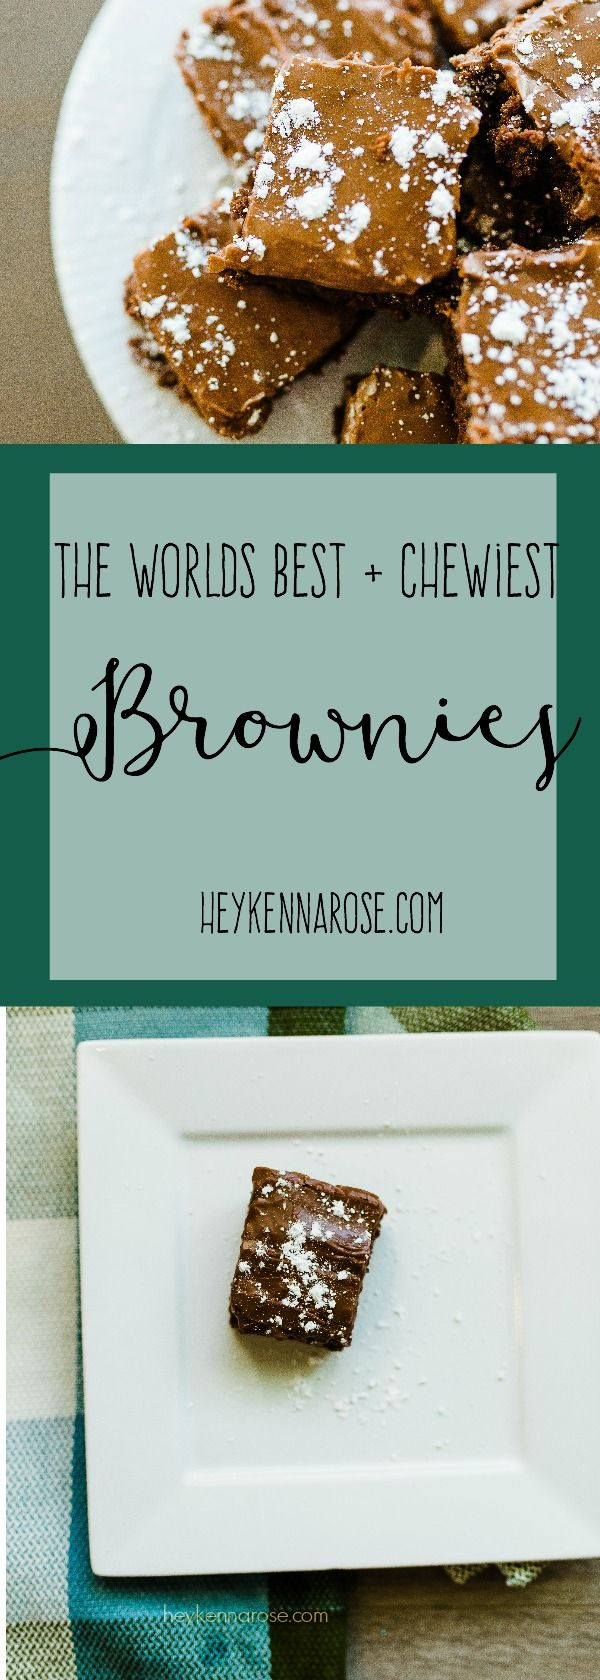 The Worlds Best Home Made Brownie  Homemade Brownies   Brownies   Chocolate Brownie   Chewy Brownies   Brownie Recipe   Made from Scratch   Dessert   Home Made Dessert   Easy Dessert   Dessert Brownie   Chewy Chocolate Brownie   Hersheys Brownie   Home Made Chocolate Brownie  